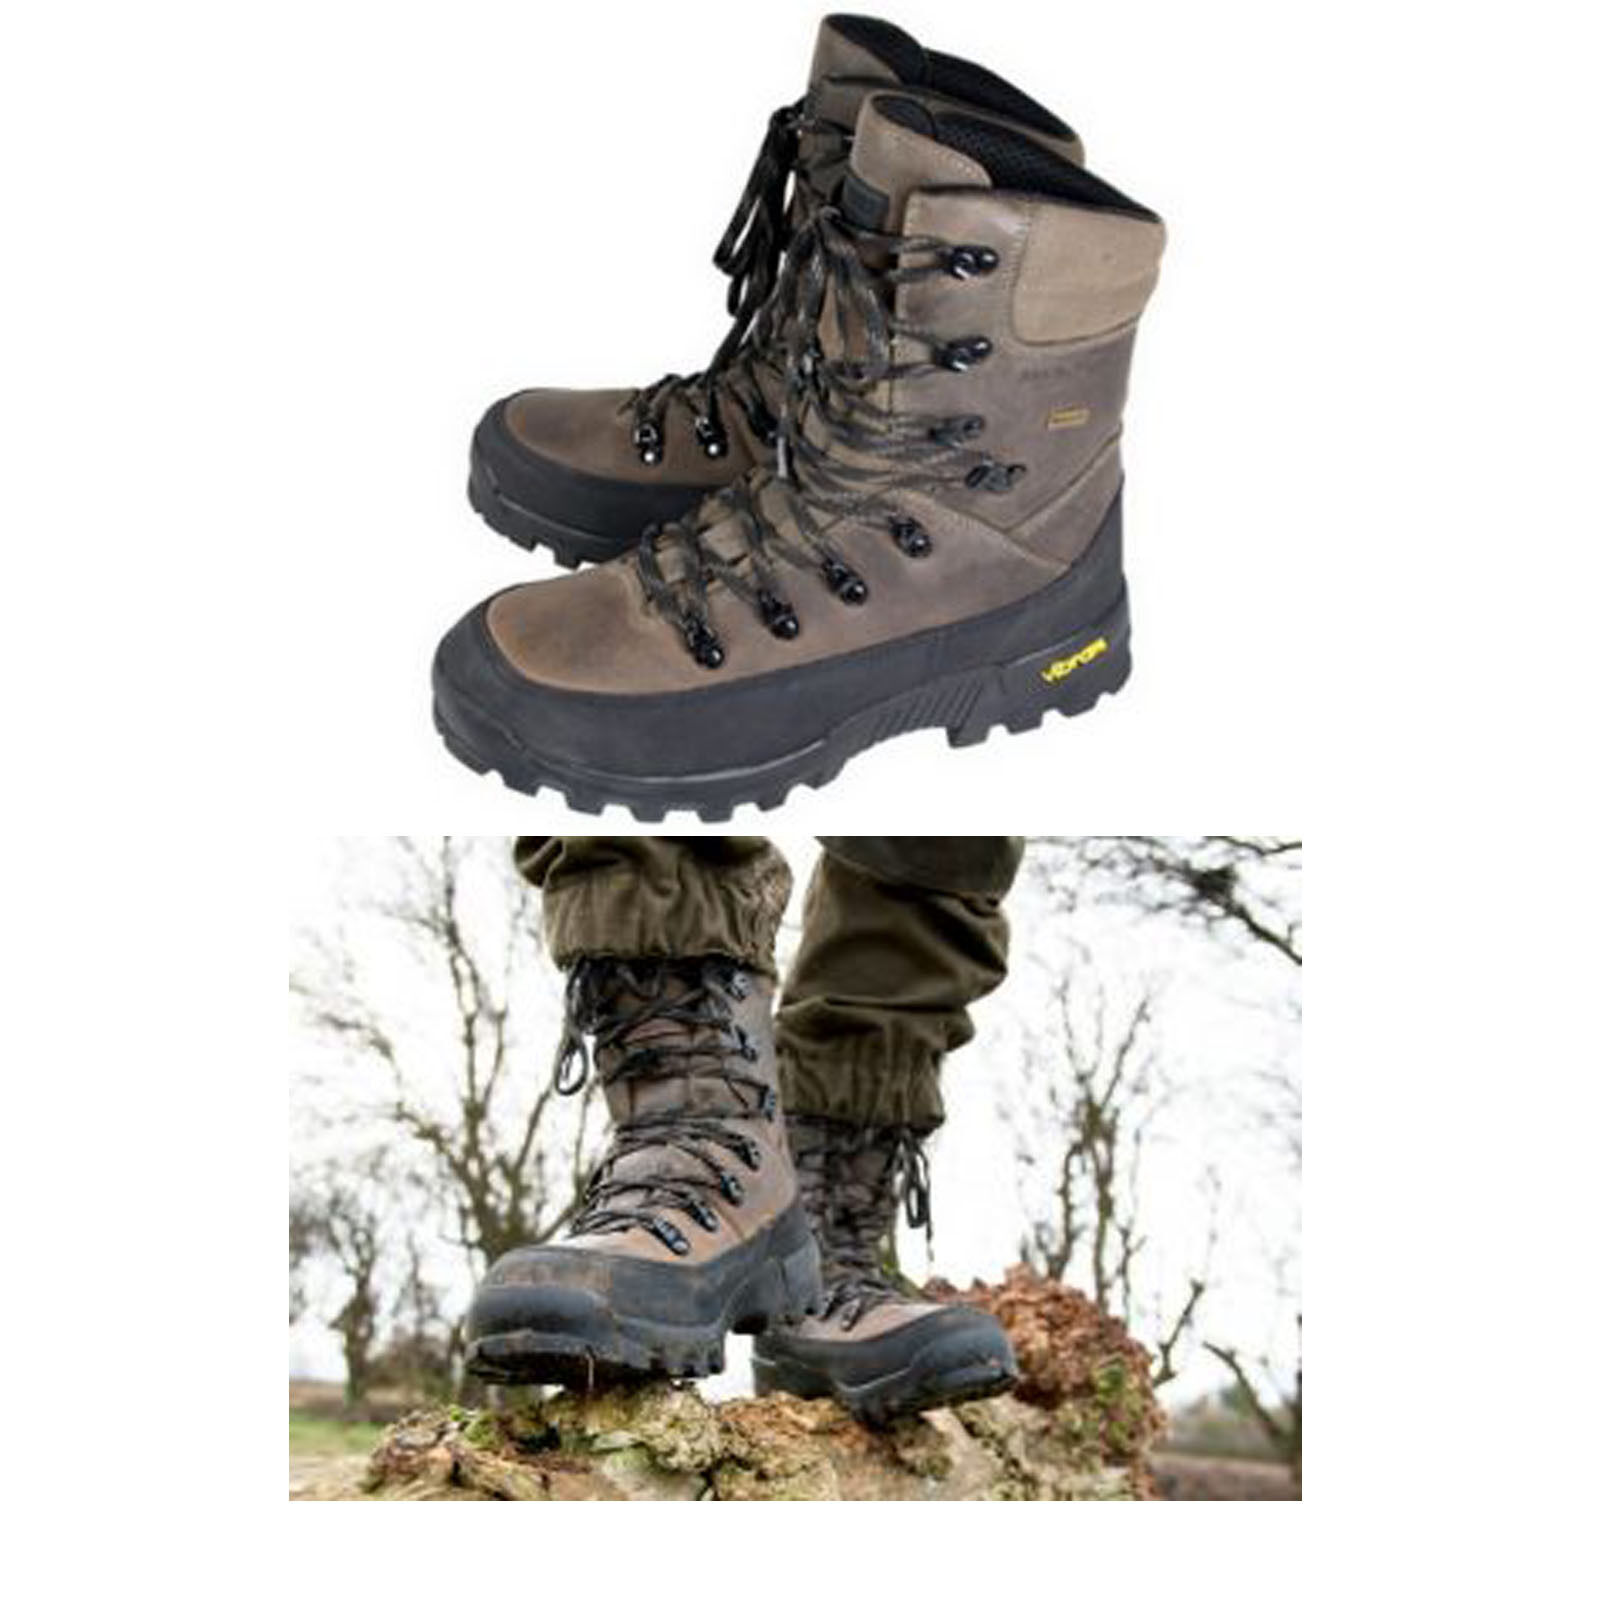 Jack Pyke Hunters Stiefel For Hunting, Hiking, Fishing, Outdoors